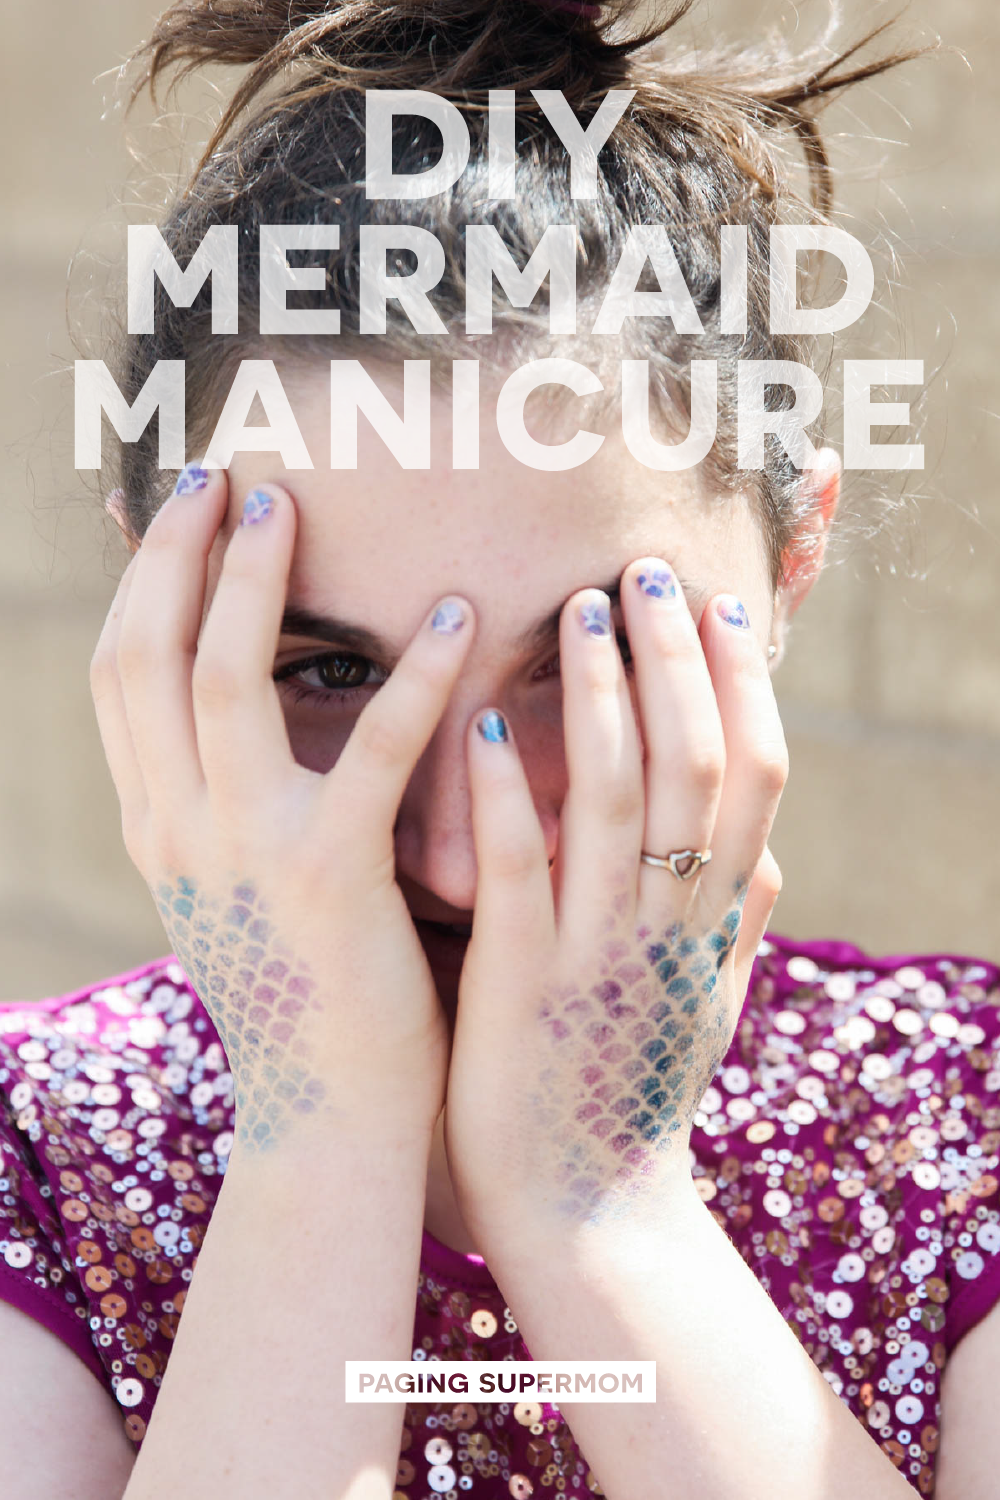 How to Do a Mermaid Manicure - make DIY Mermaid Tail Stencils to do Mermaid Nails and make a Mermaid Tail Temporary Tattoo